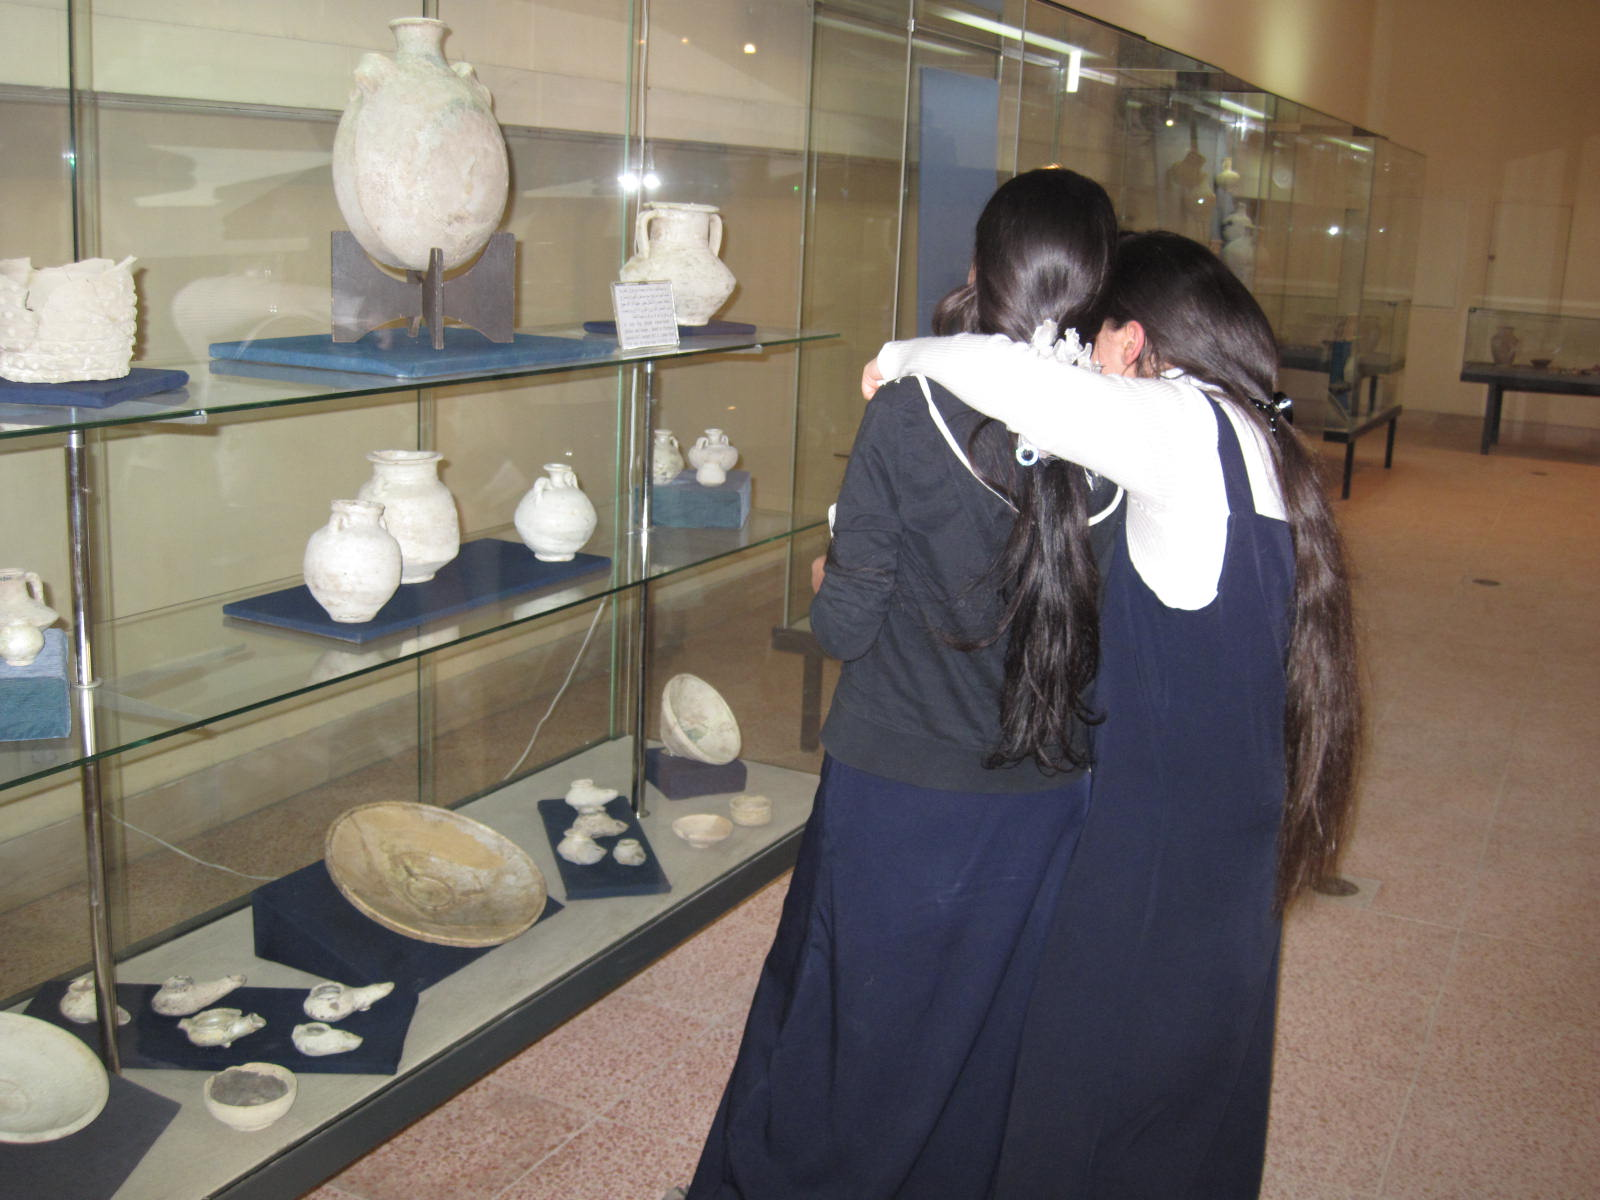 Mohammed Tawfeeq/CNN. Iraqi schoolgirls discover their National Museum.